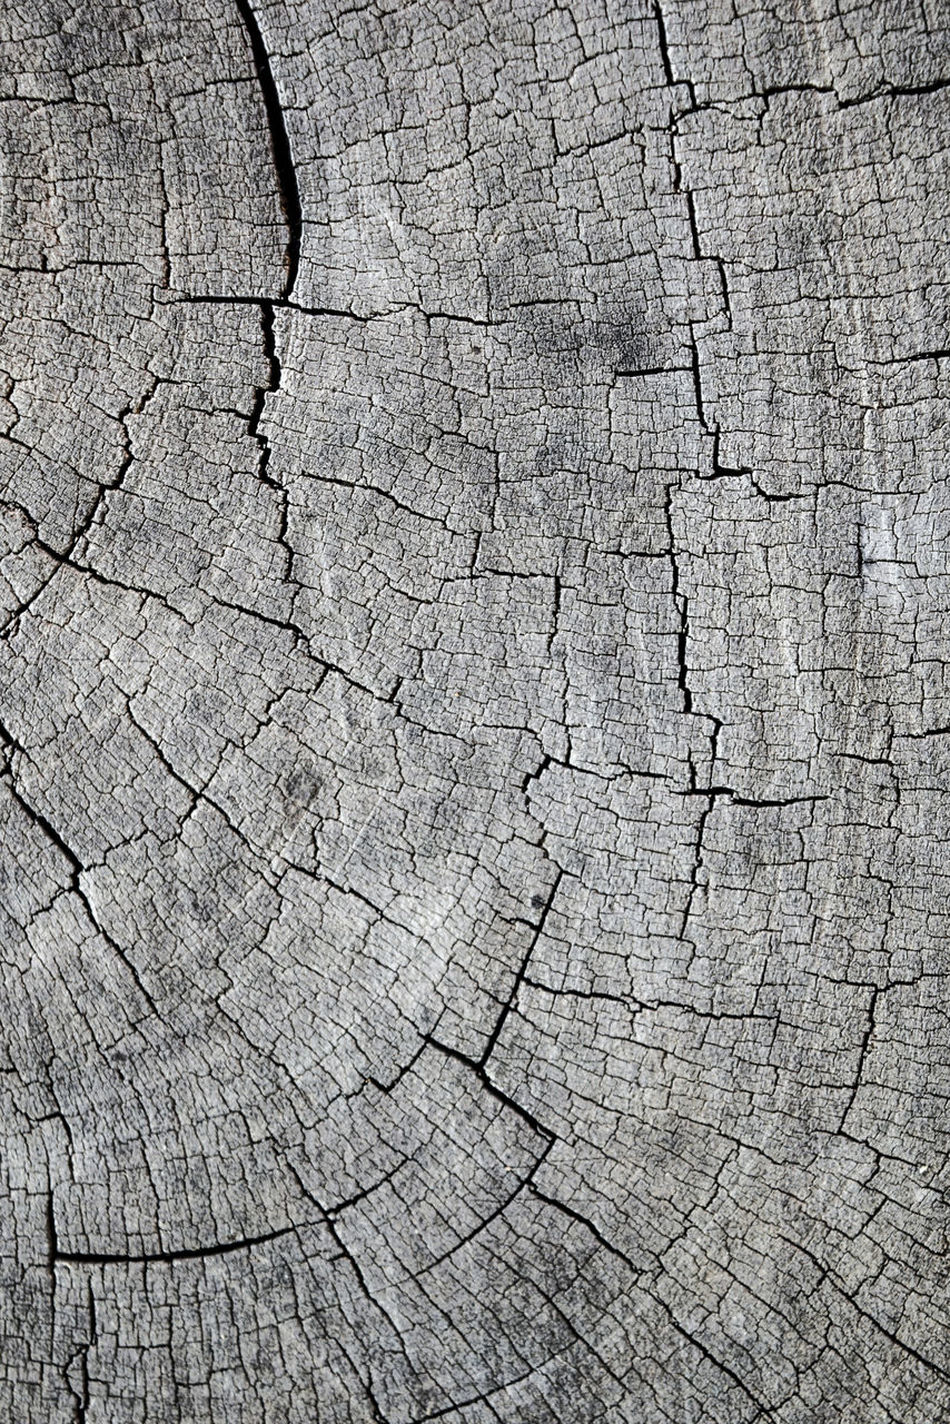 Backgrounds Brown Close-up Cracked Damaged Day Destruction Full Frame Nature No People Outdoors Pattern Textured  Textured Effect Timber Tree Ring Tree Stump Wood - Material Wood Grain